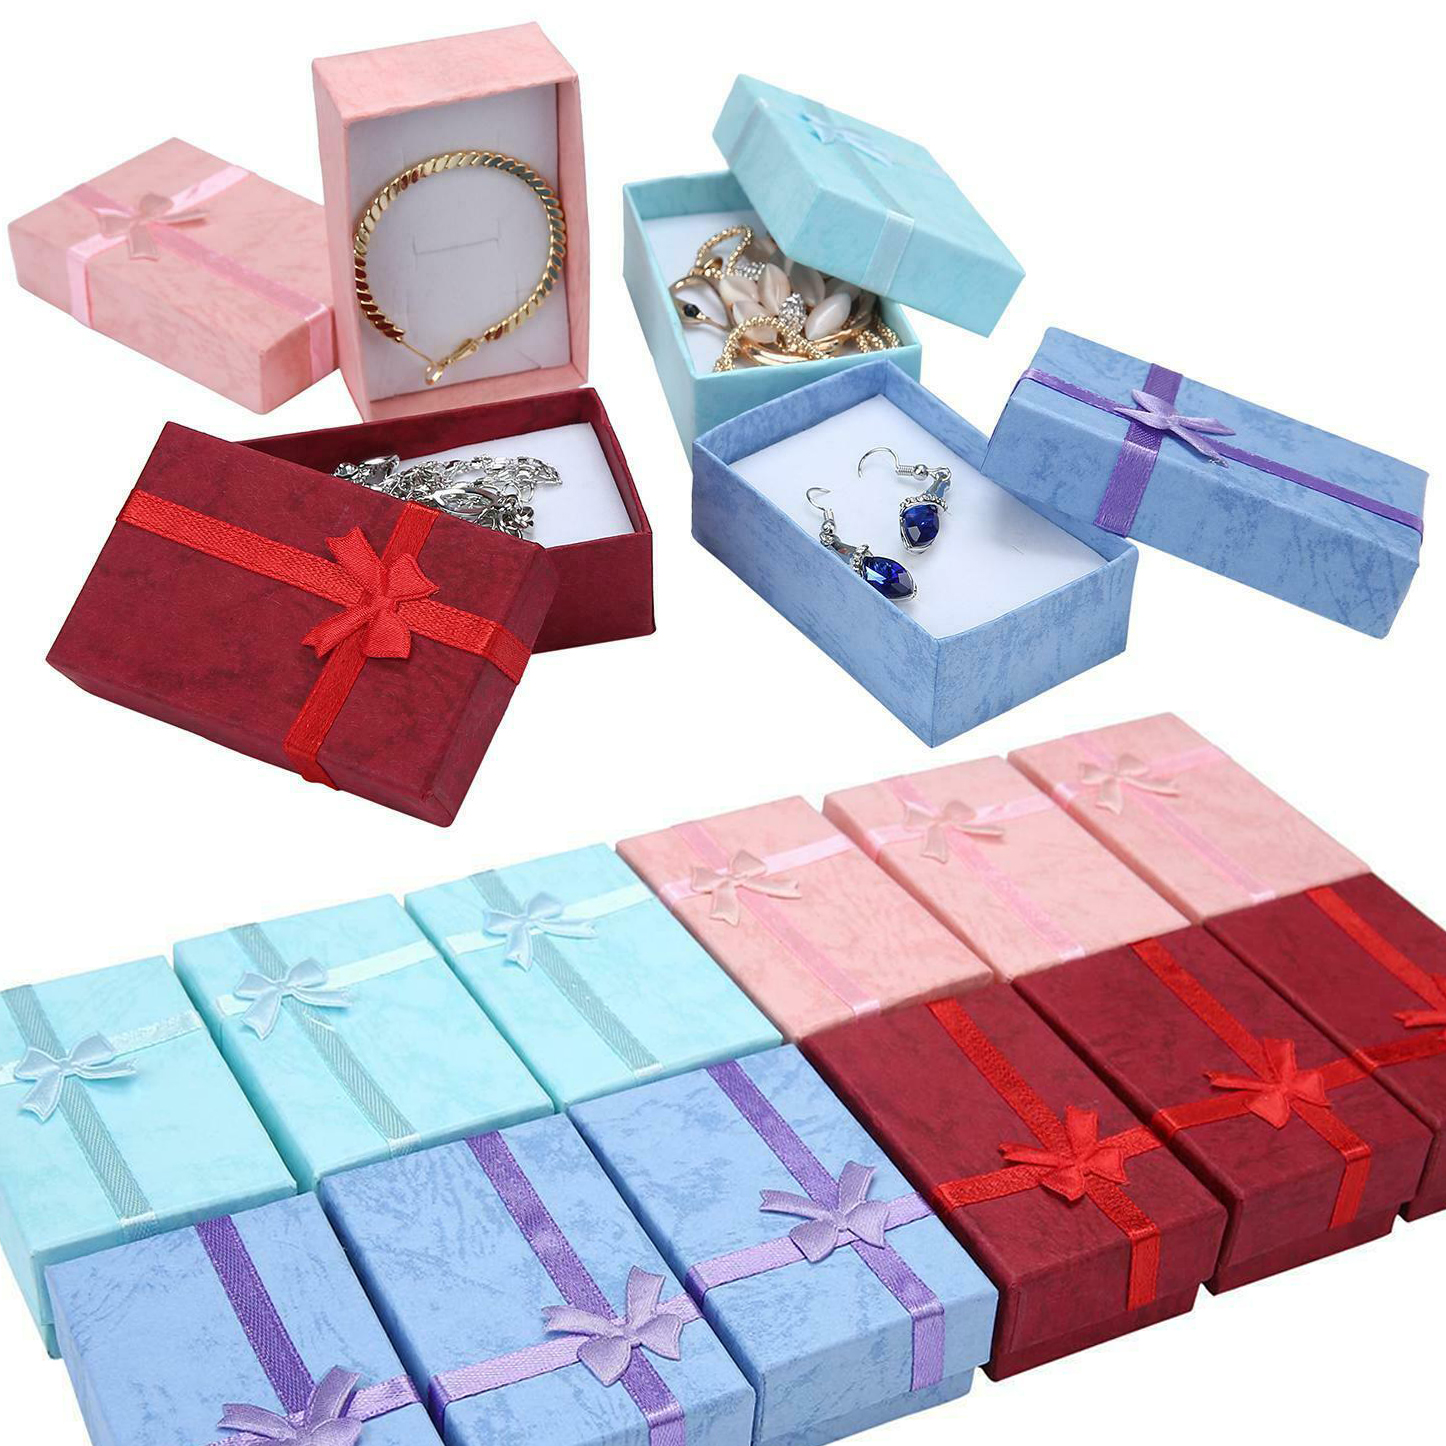 Small Gift Box Rings Necklace Bracelet Earrings Pendant Jewelry Boxes Surprise Case Square Paper Delicate Wedding Birthday Gifts